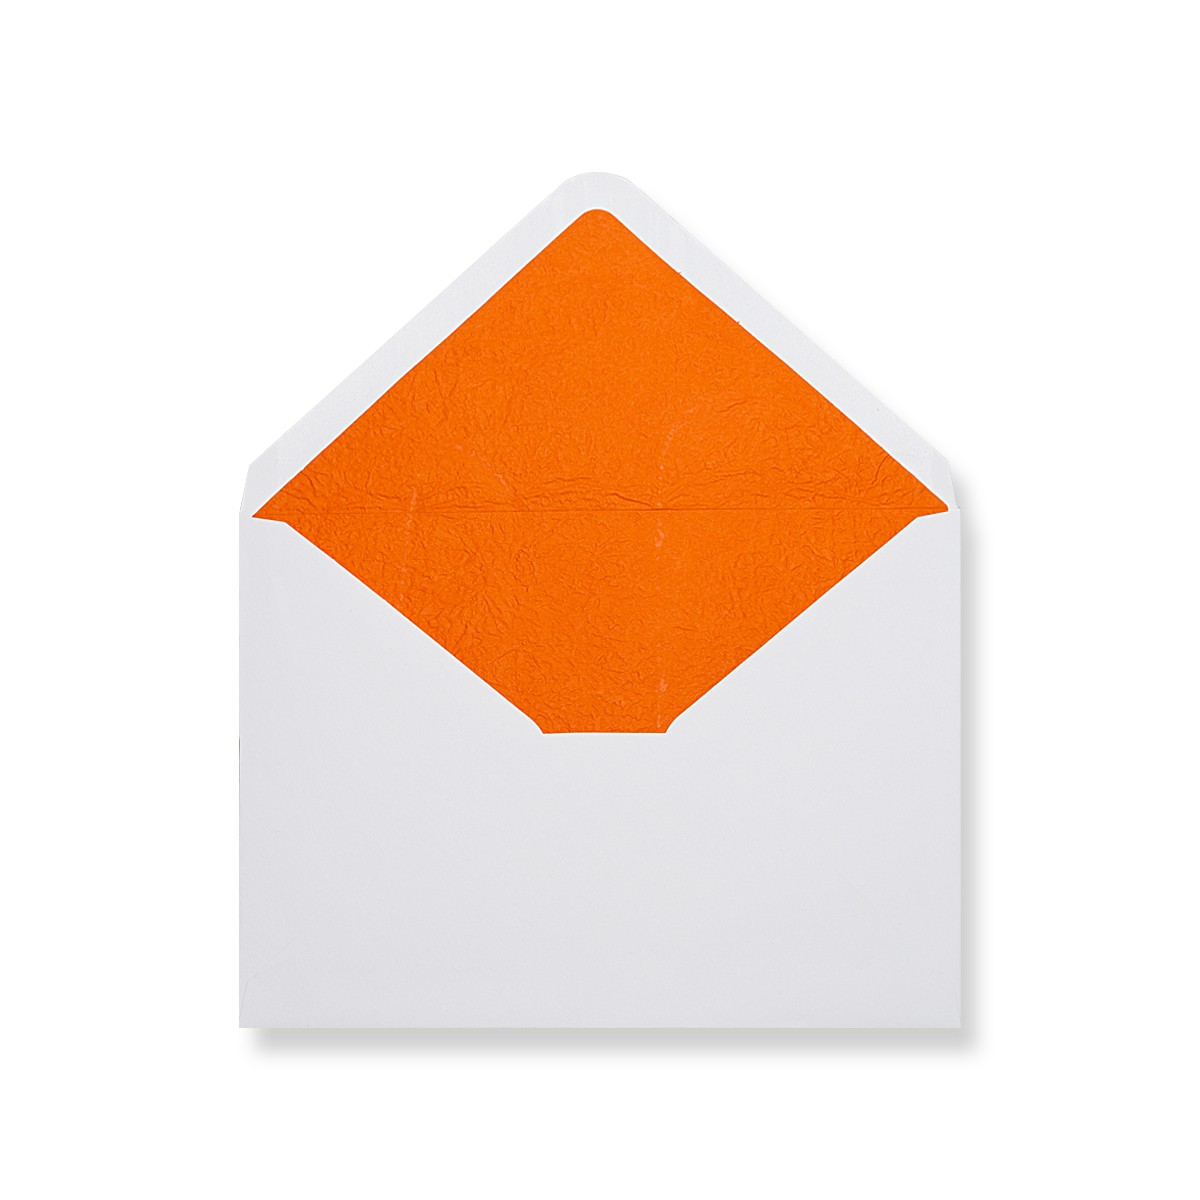 C7 White Envelopes Lined With Orange Paper